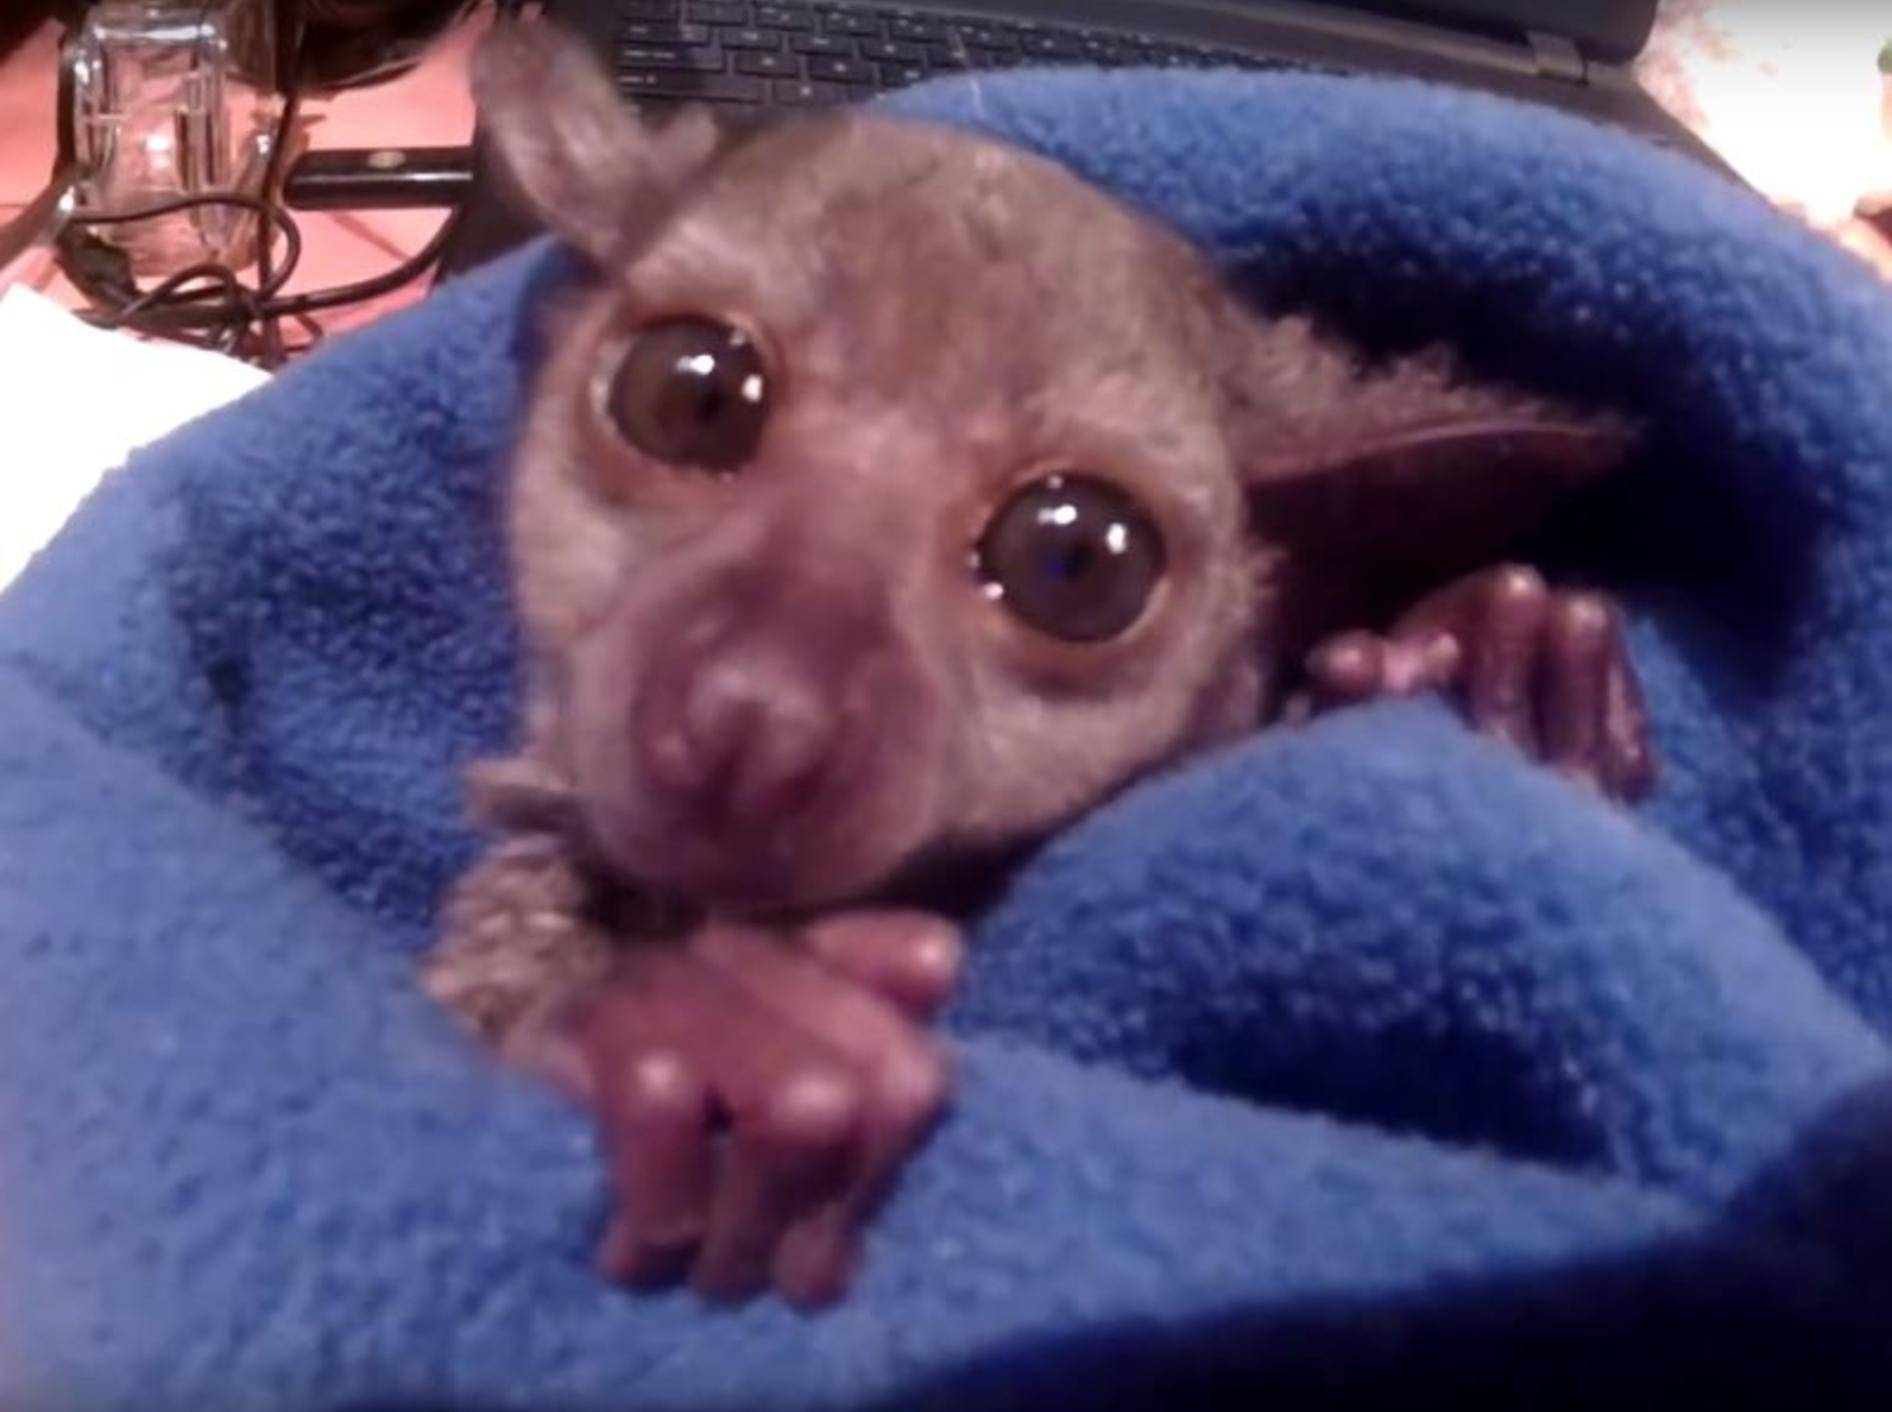 Baby-Galago Gizmo wünscht frohe Weihnachten – YouTube / Exotic Animal Experience